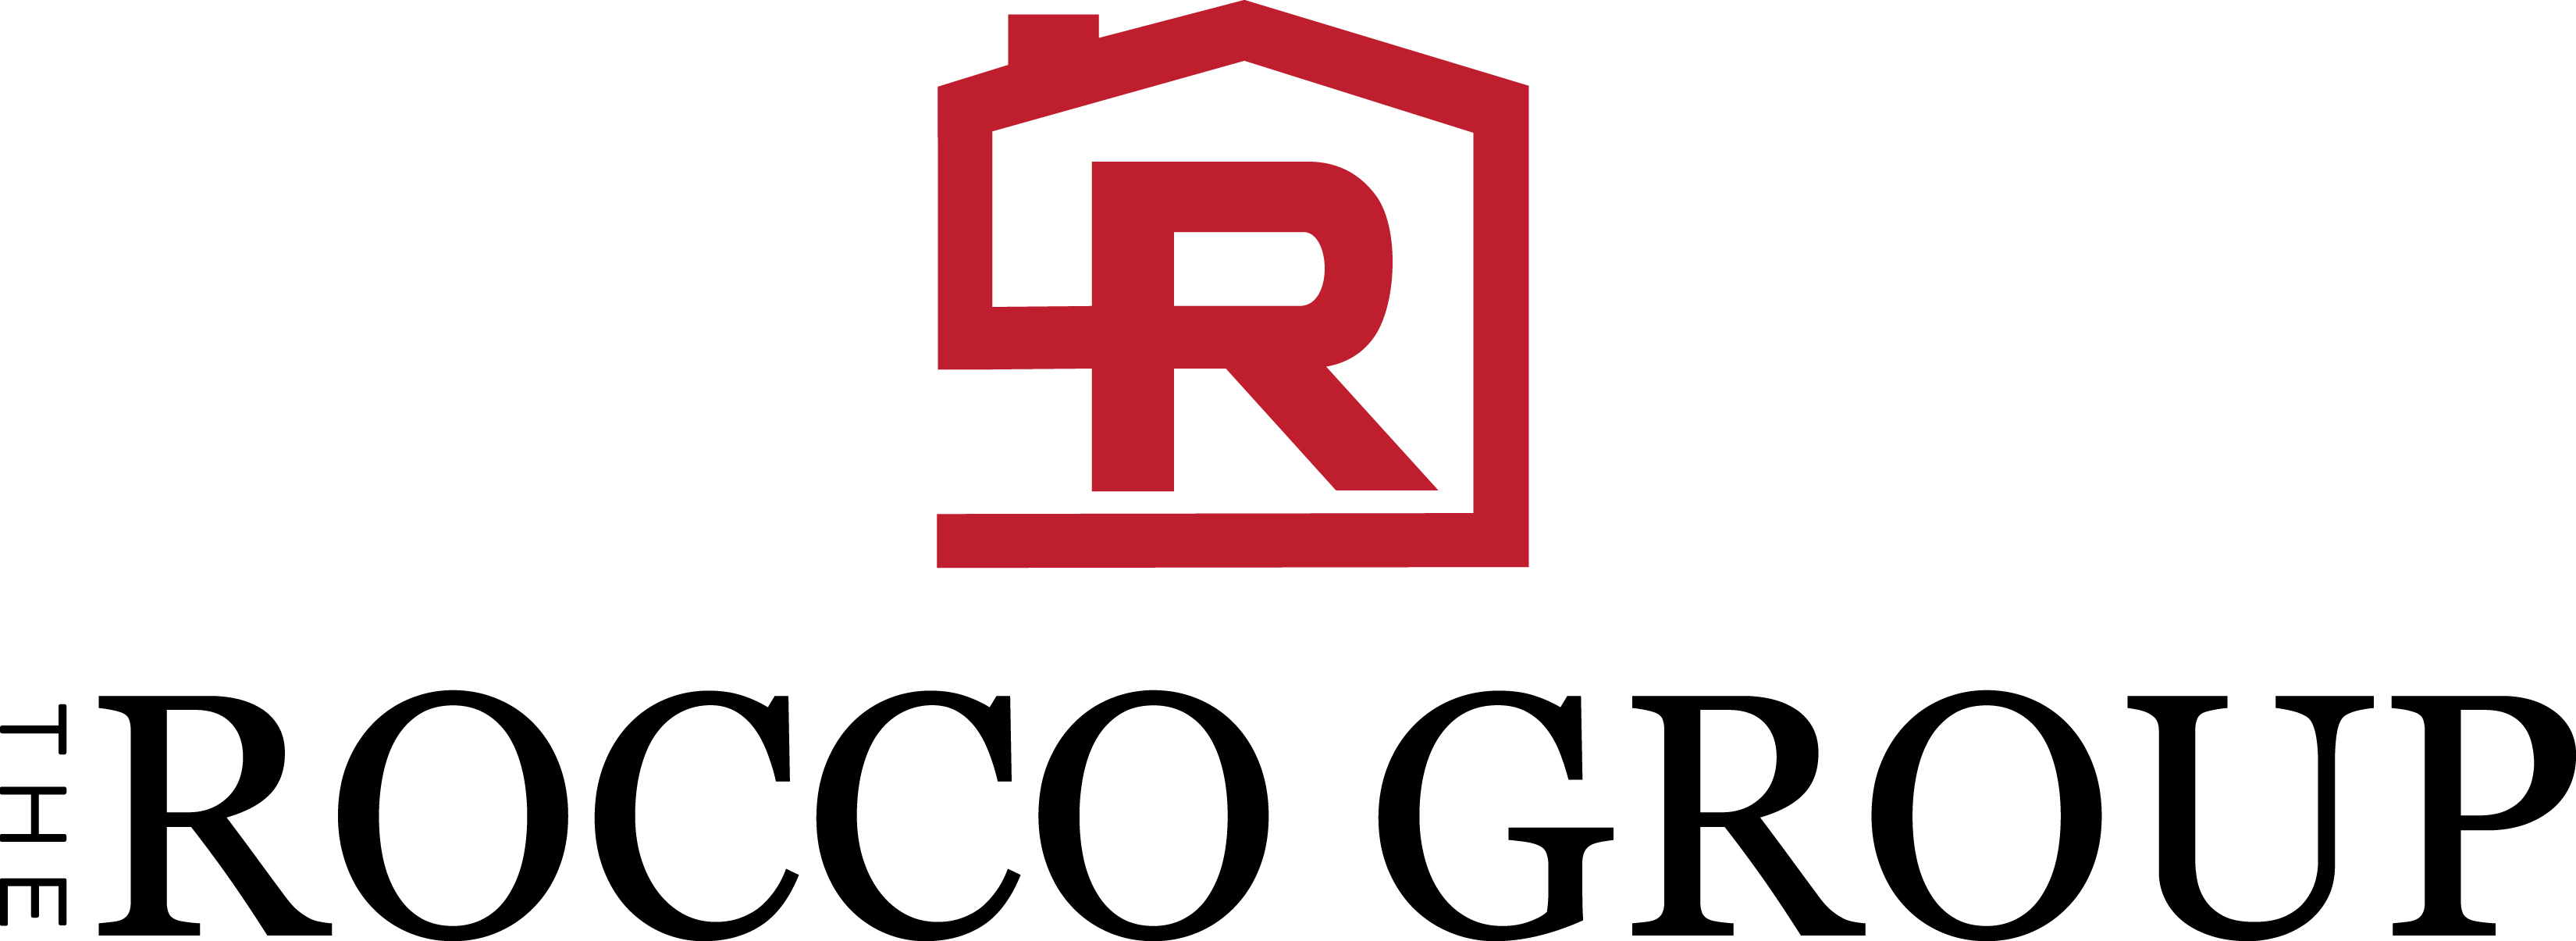 The Rocco Group at Keller Williams Realty logo